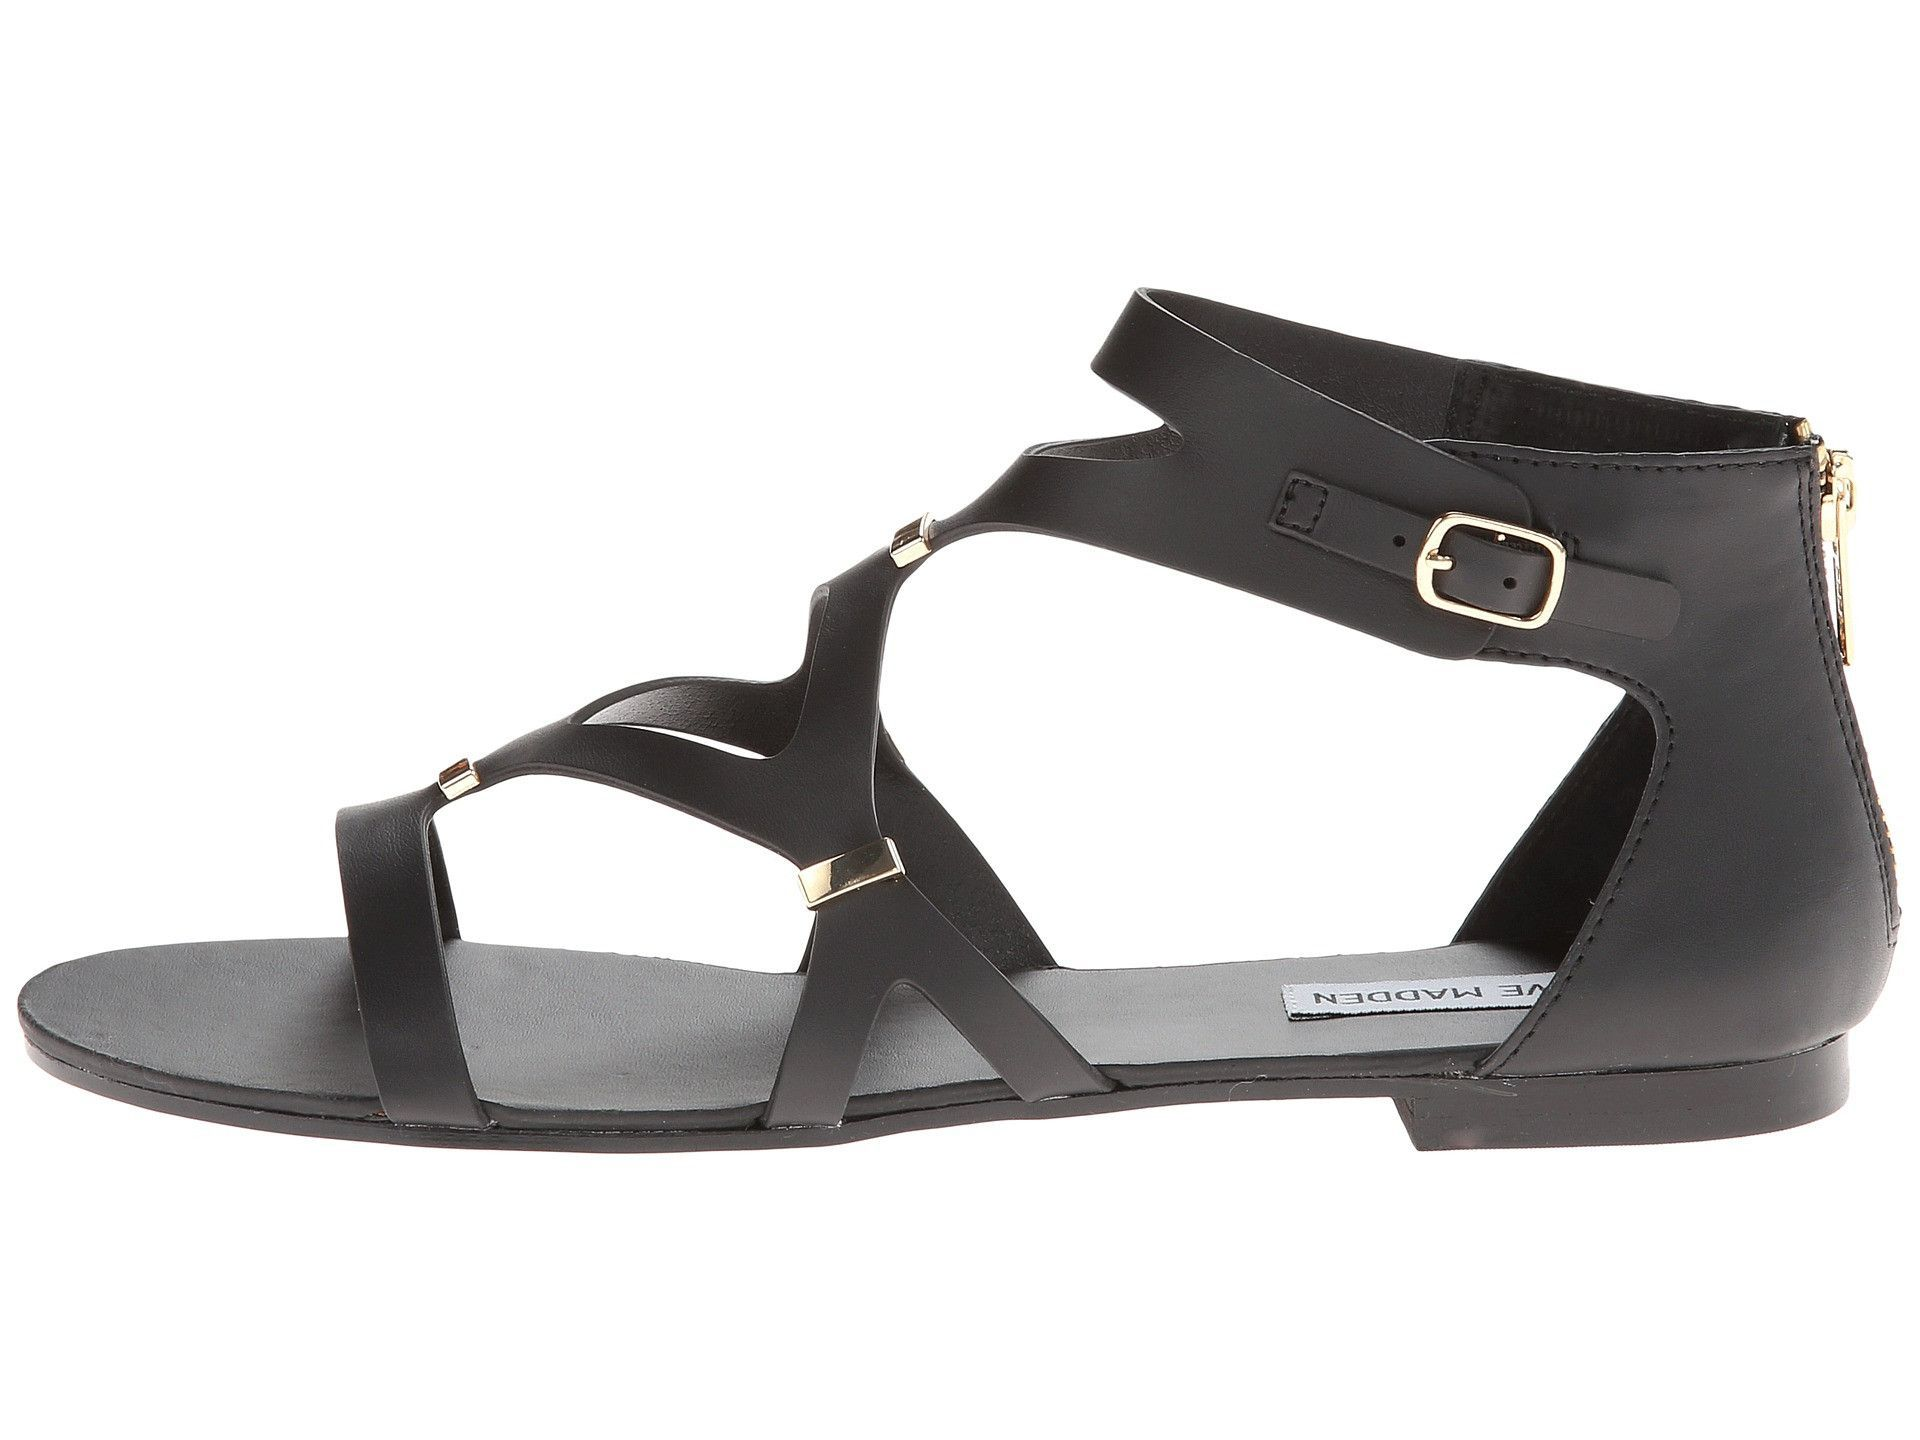 Steve Madden Women's Comma Gladiator Sandal. Comfortable ShoesSteve ...